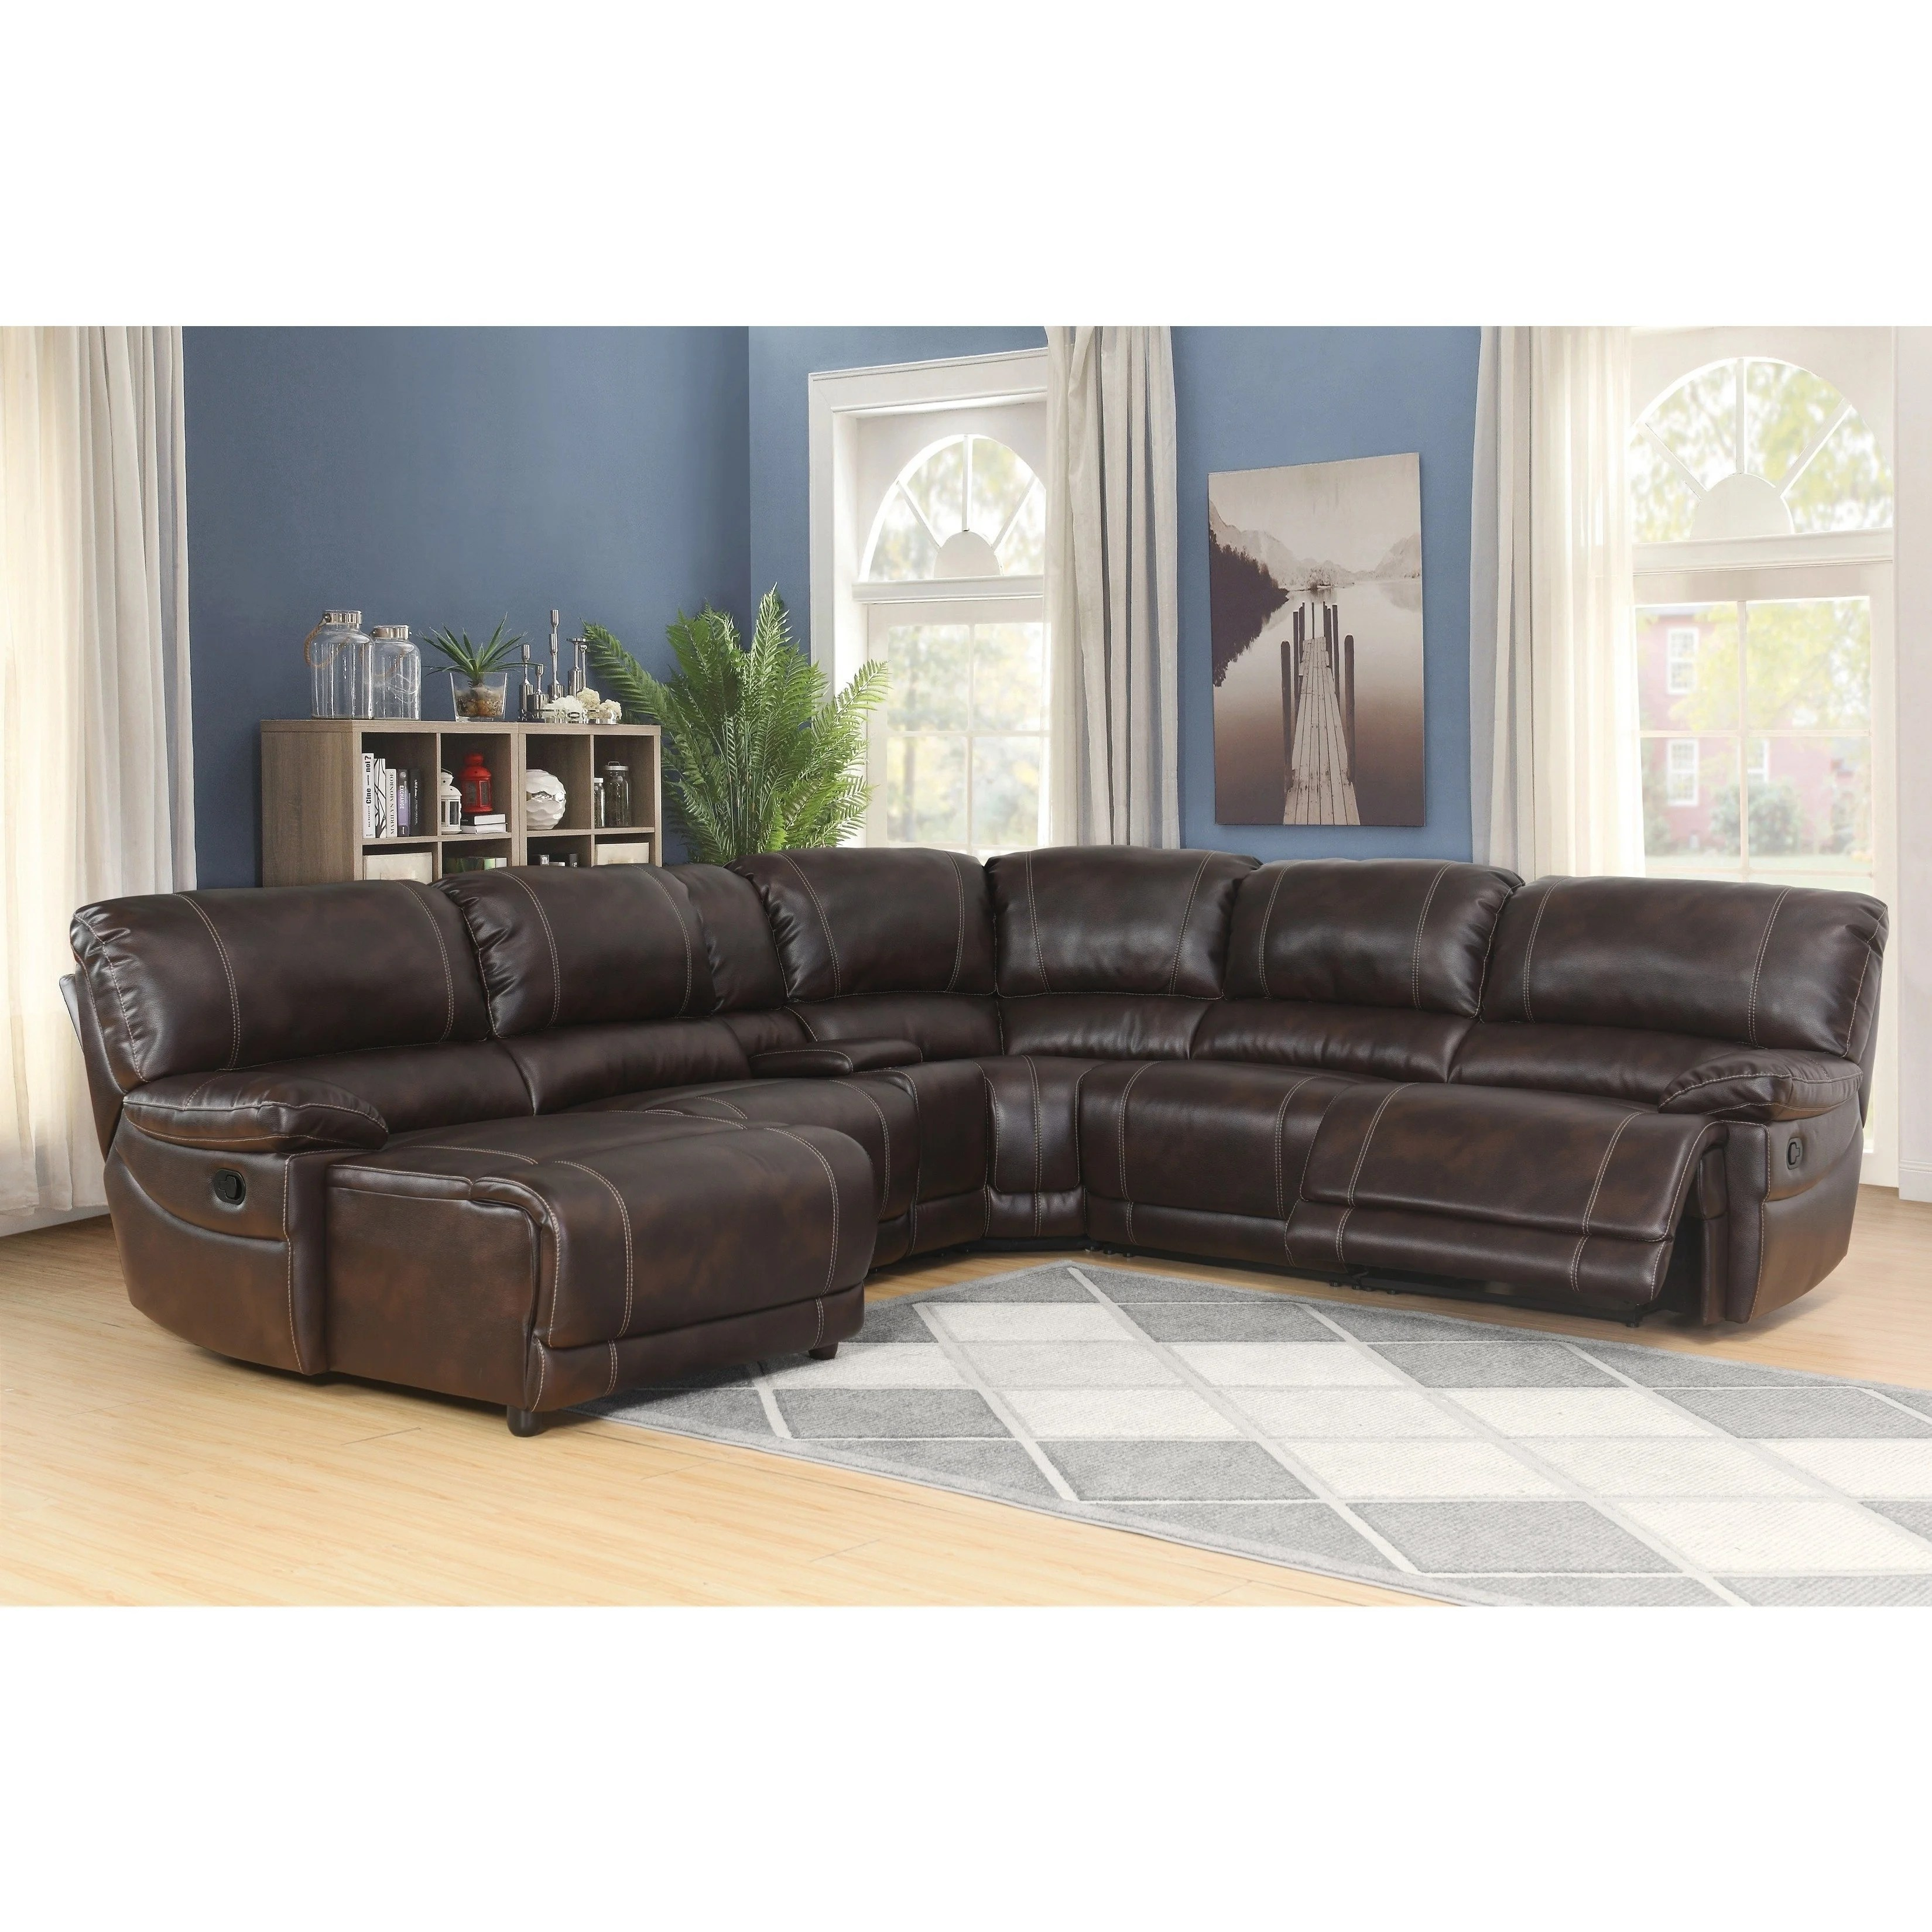 Cheap Sectional Sofa Abbyson Cooper 6 Piece Dark Brown Sectional Sofa